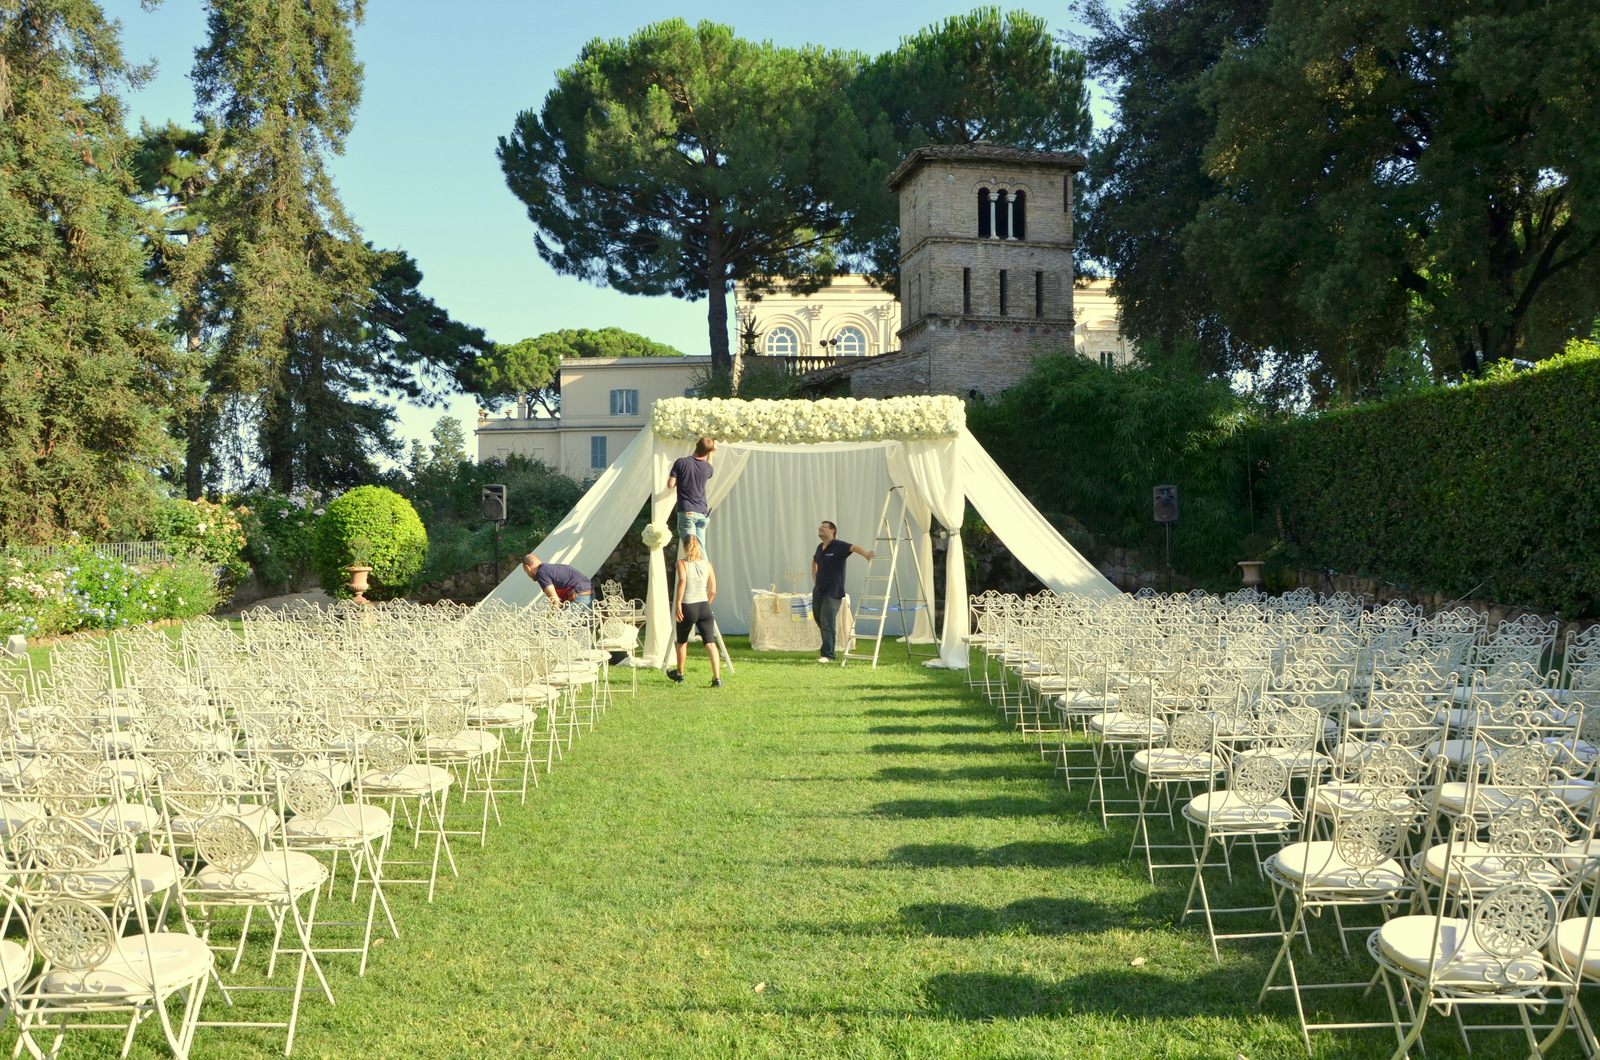 Wedinitaly by Raffaella Alflatt - Weddings in Italy - Wedding in Rome